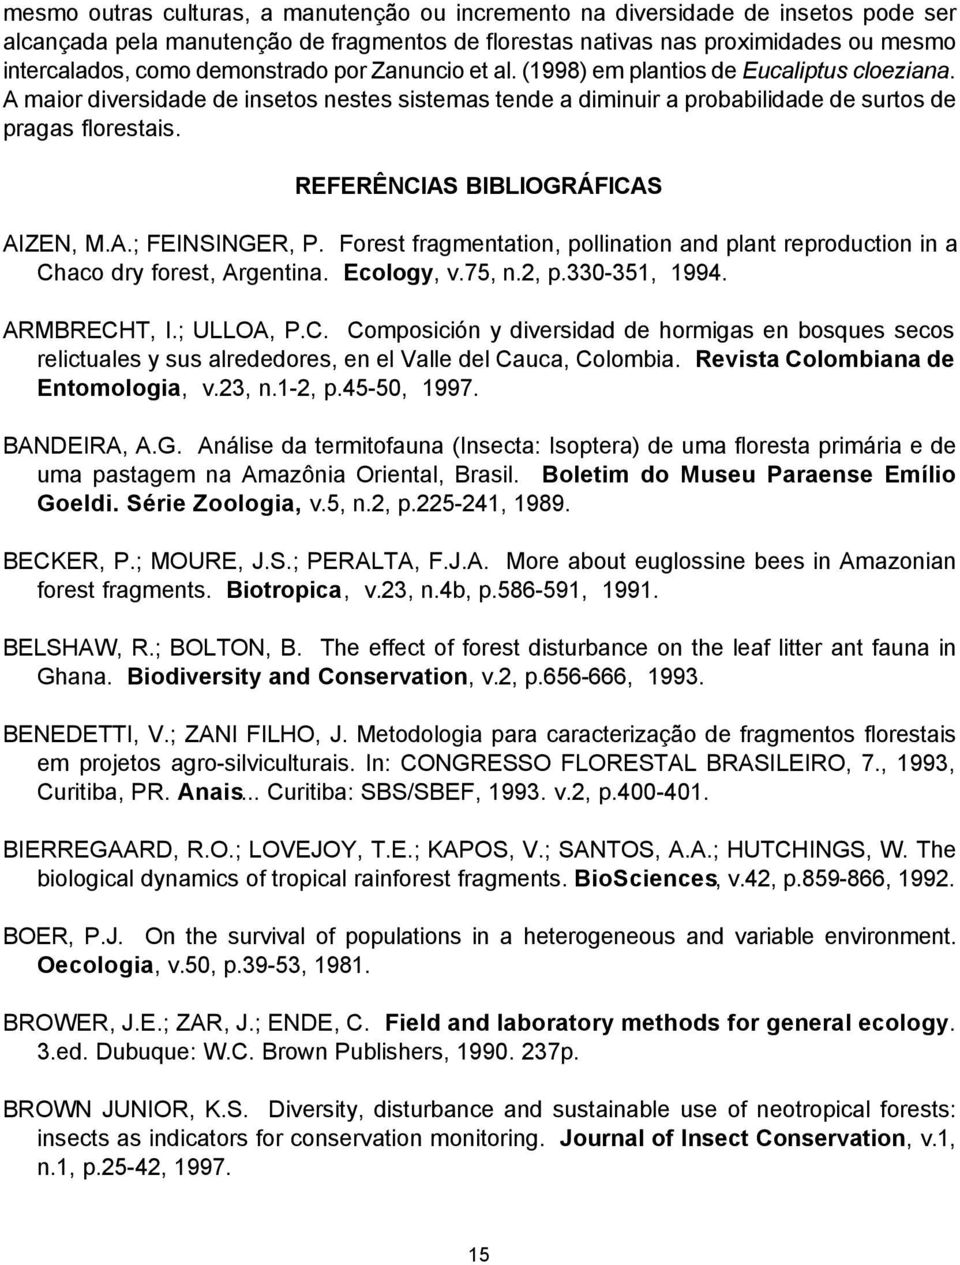 REFERÊNCIAS BIBLIOGRÁFICAS AIZEN, M.A.; FEINSINGER, P. Forest fragmentation, pollination and plant reproduction in a Chaco dry forest, Argentina. Ecology, v.75, n.2, p.330-351, 1994. ARMBRECHT, I.